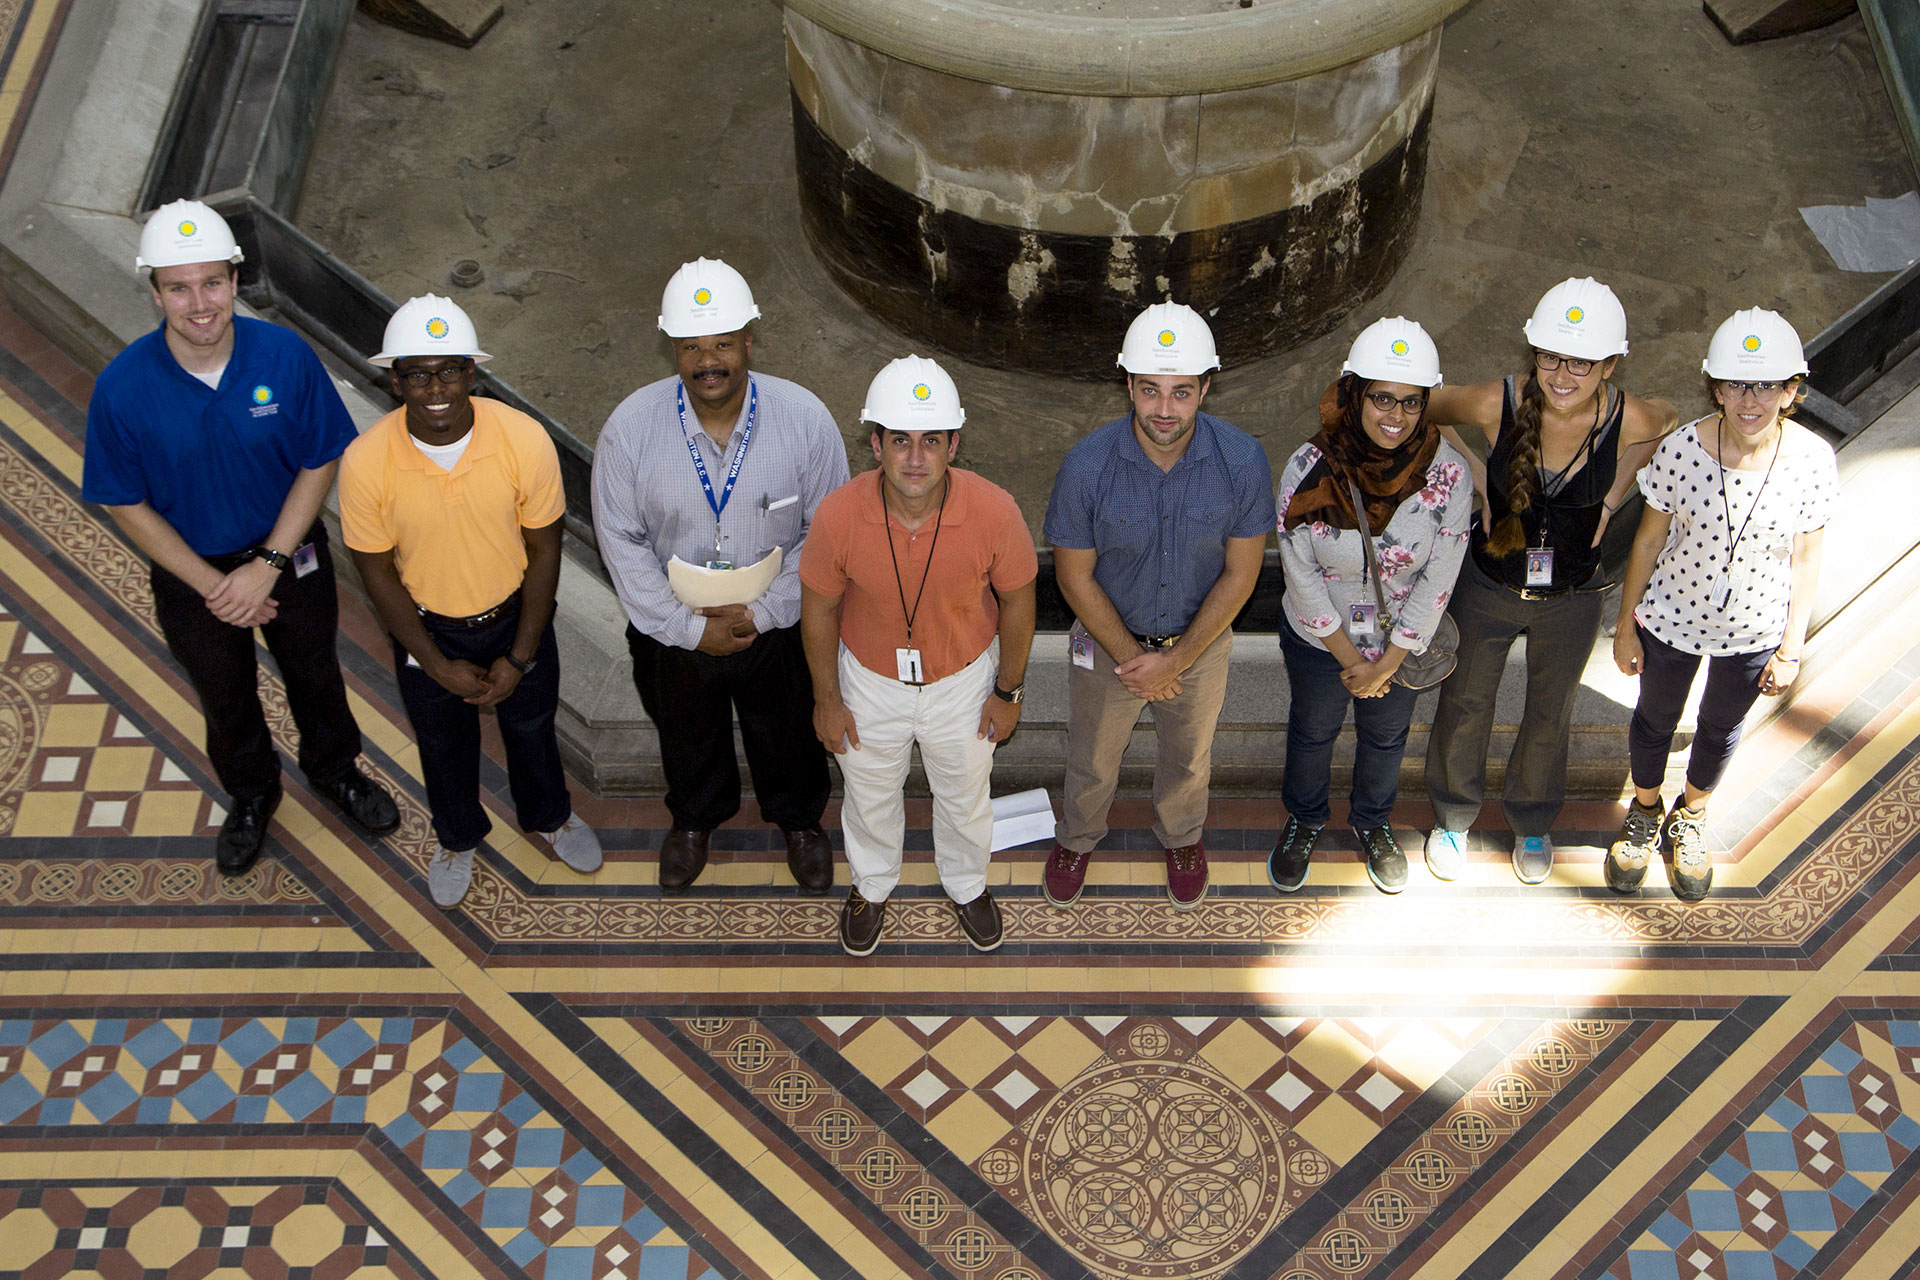 OFMR Interns pose for a photo with hard hats in the Arts and Industries Building